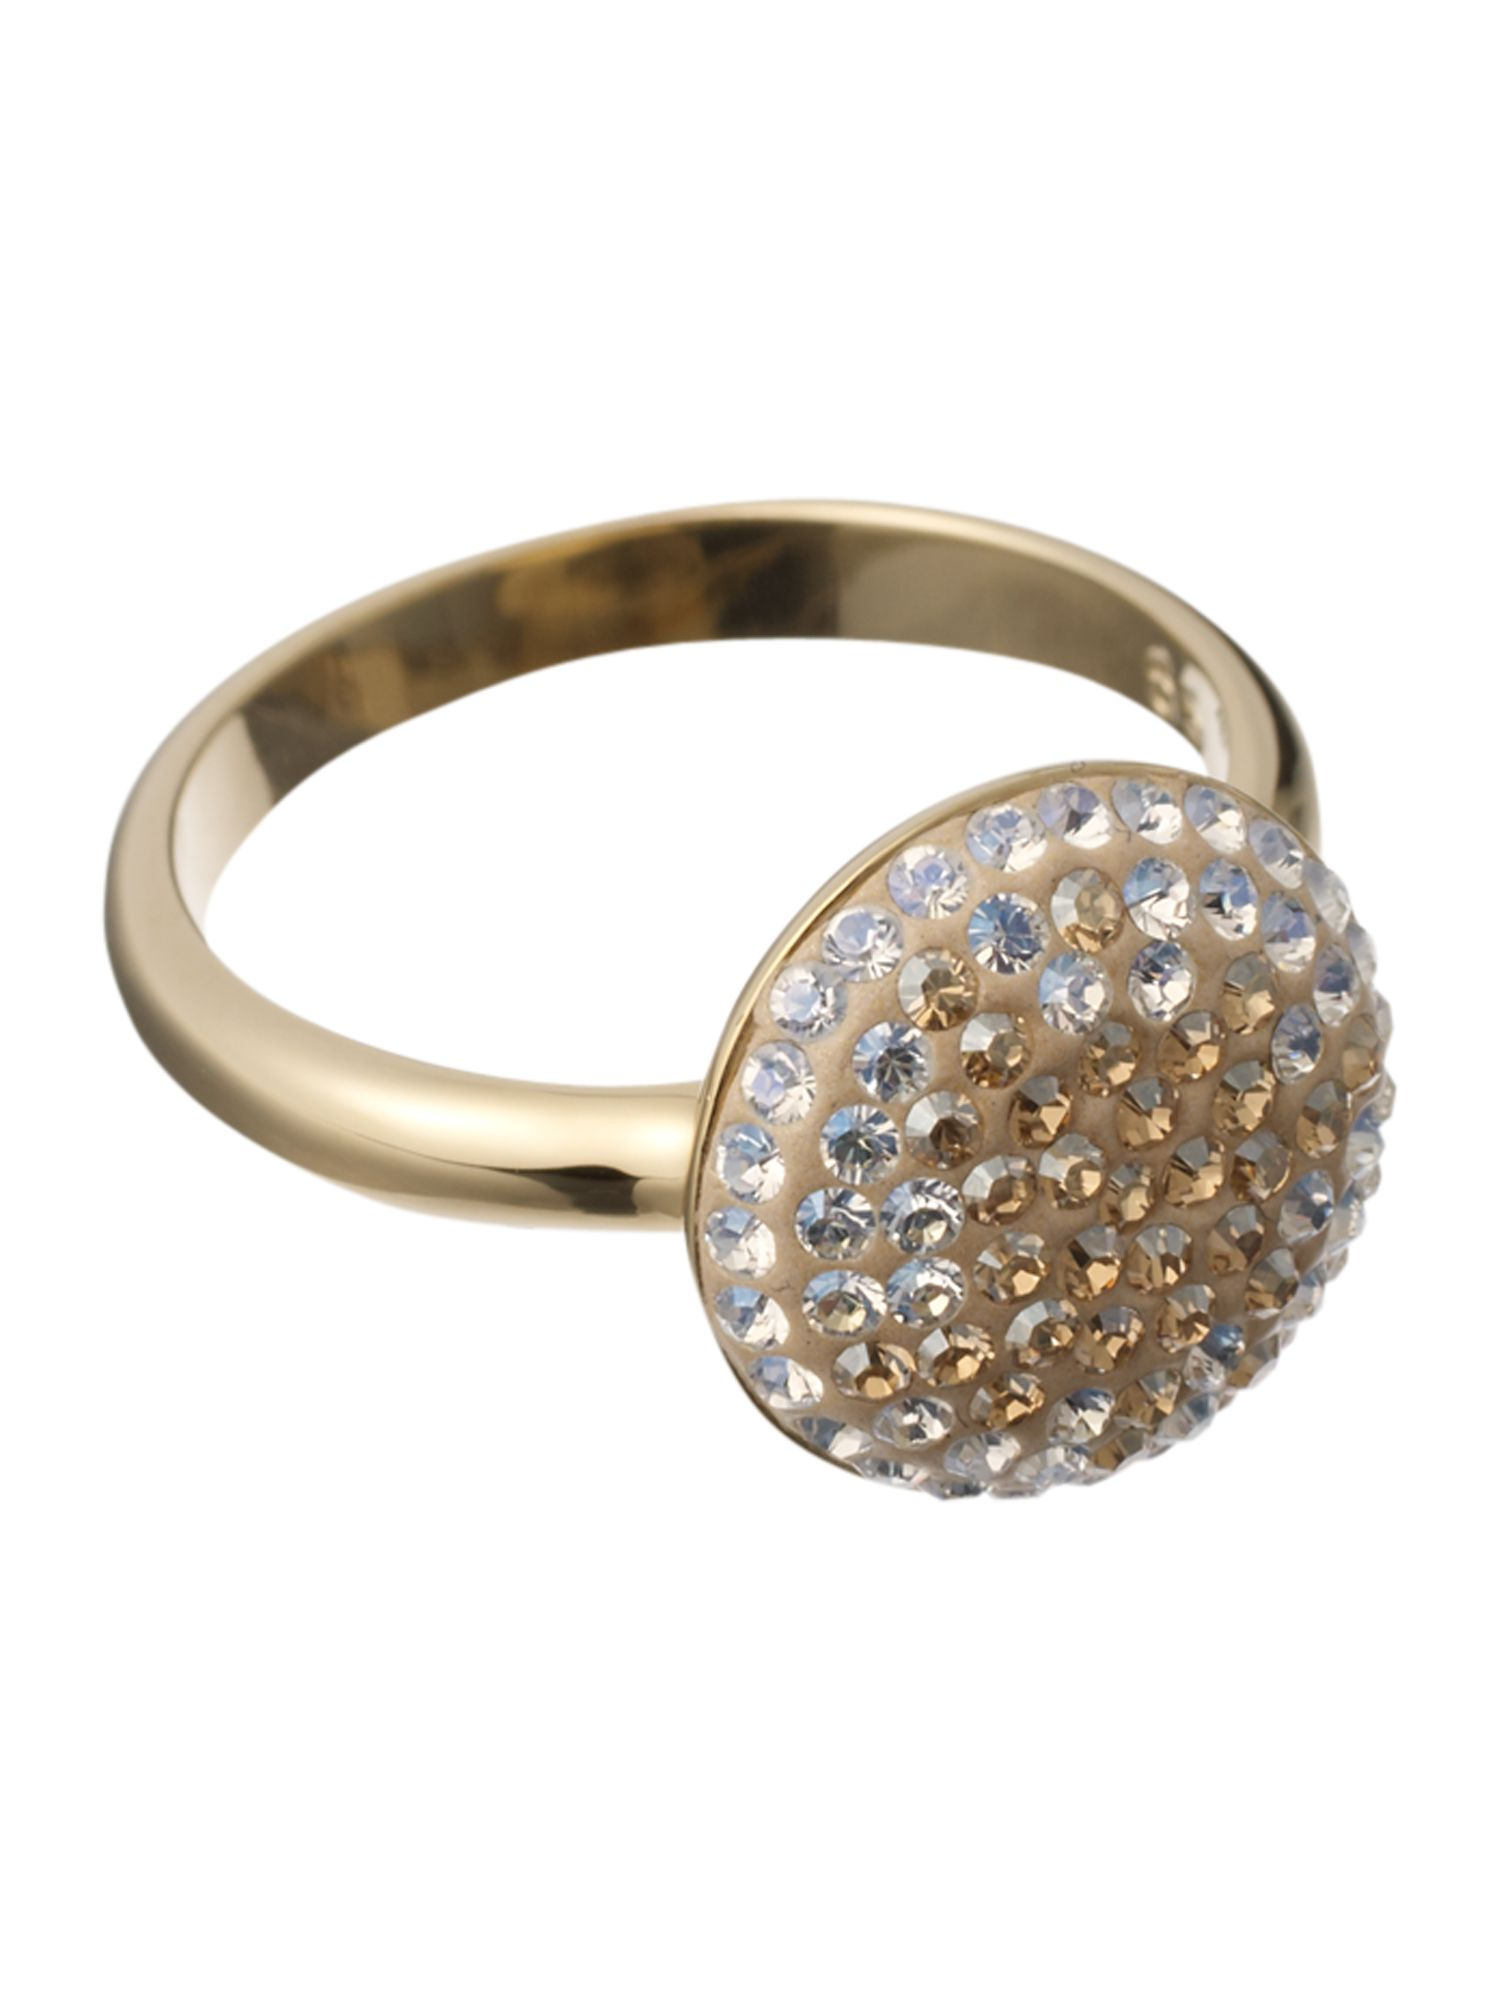 Maggy crystal encrusted ring - Gold